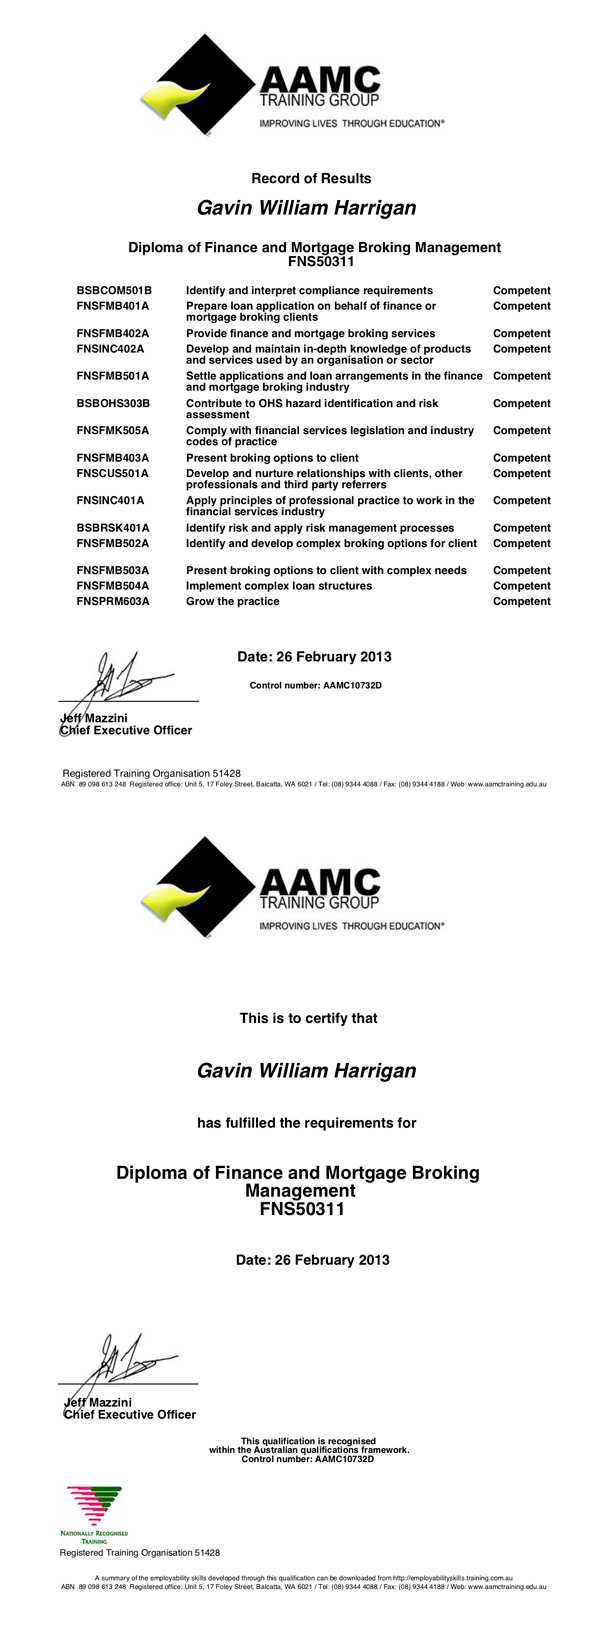 Gavins diploma of finance and mortgage broking qualification